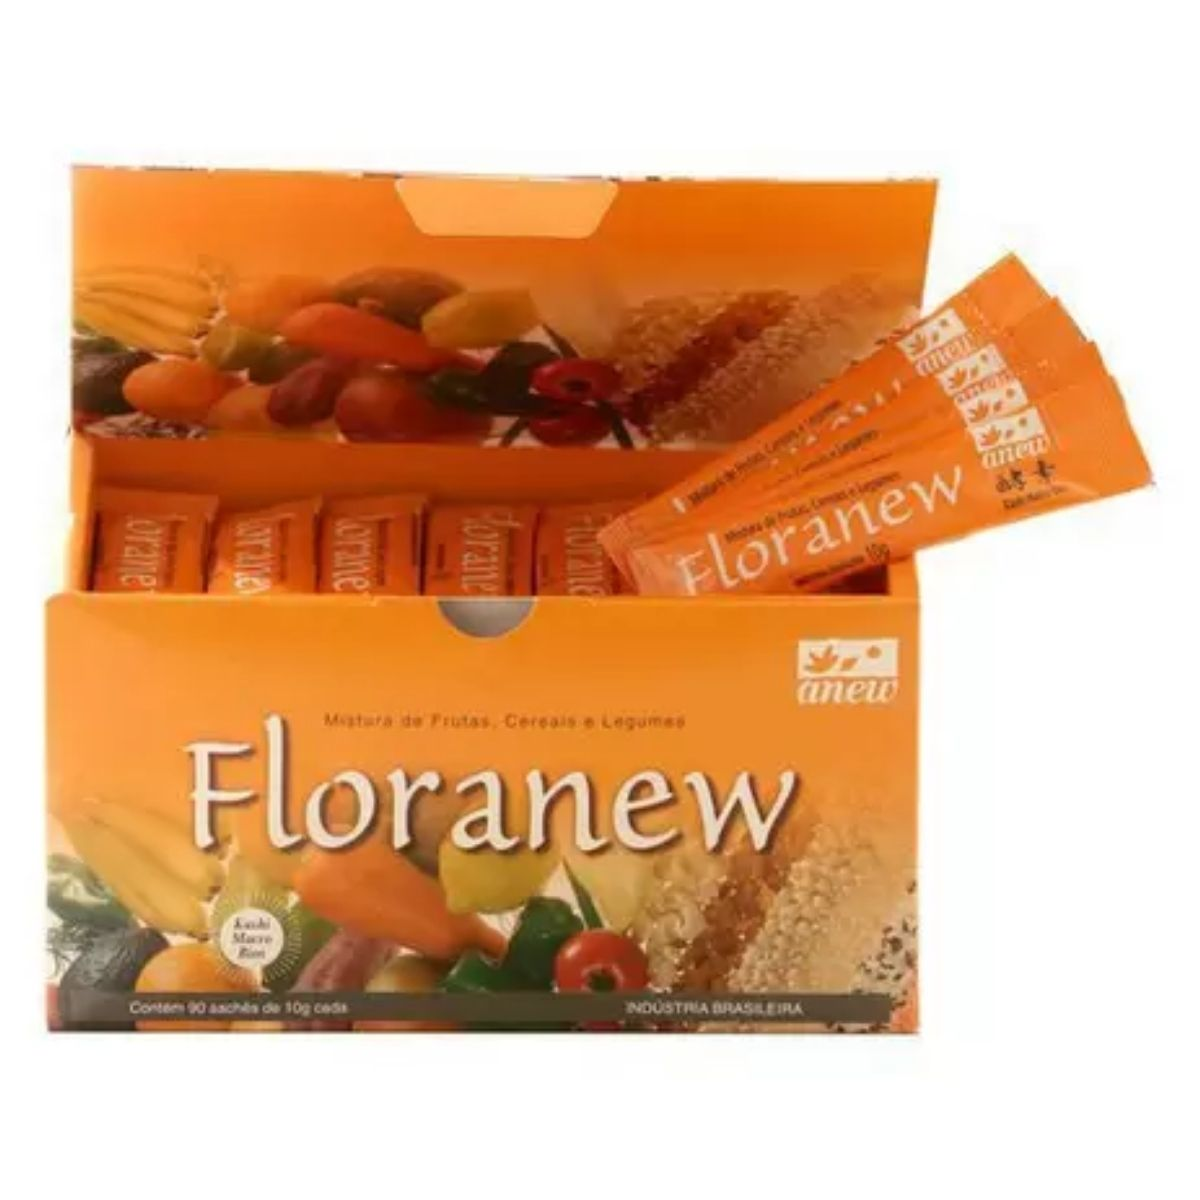 Floranew 90 saches 10g Anew